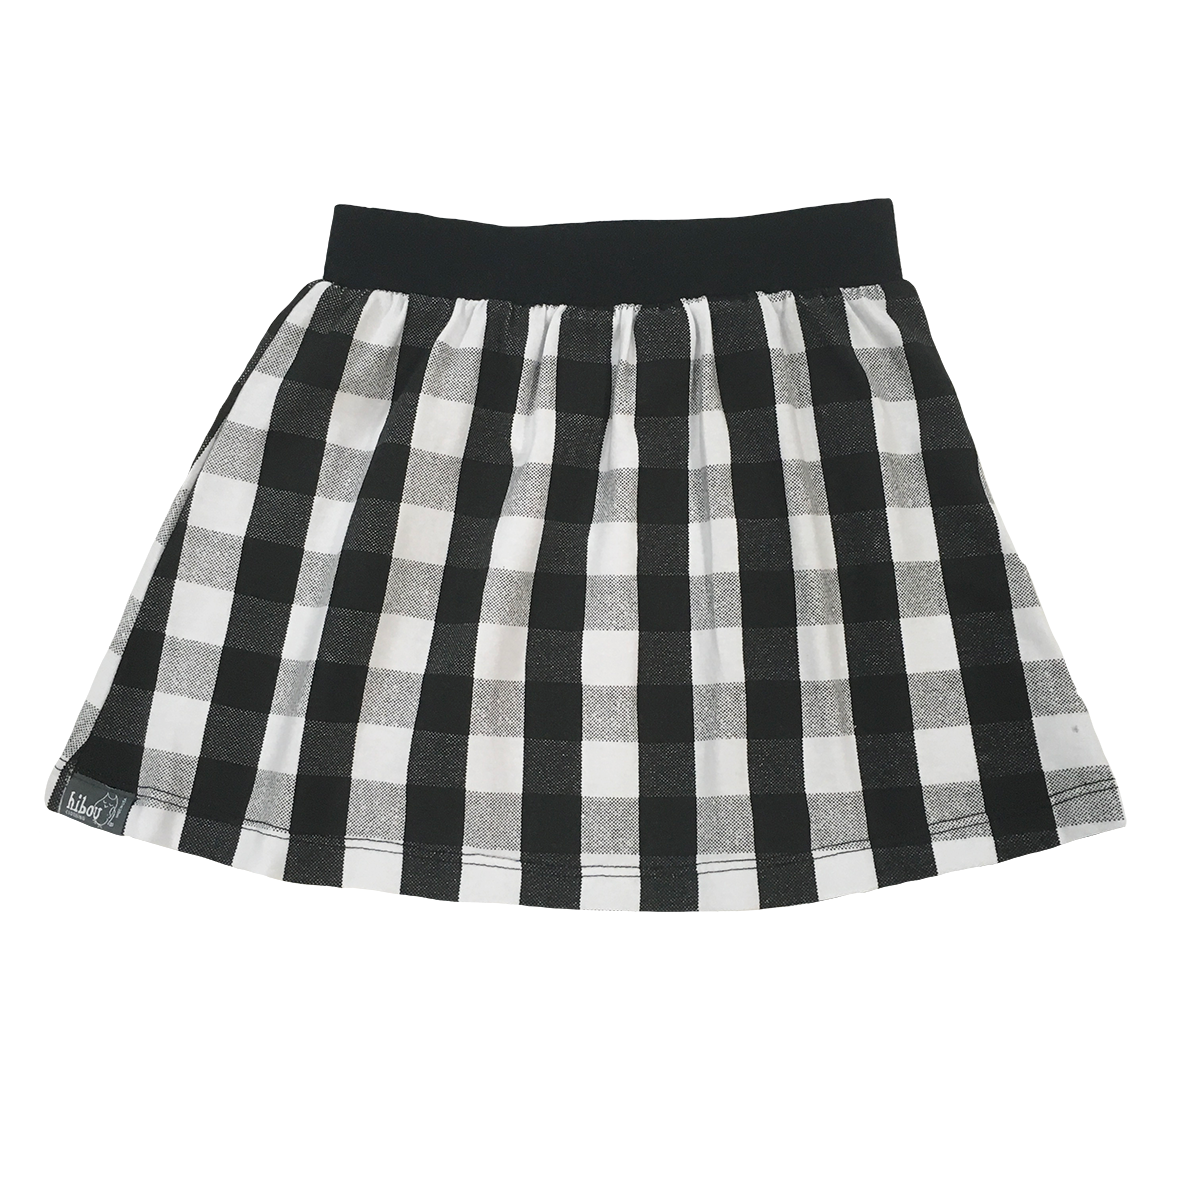 6cbb168045fb Buy Black & White Plaid Skirt at Hibou Clothing for only $ 34.00